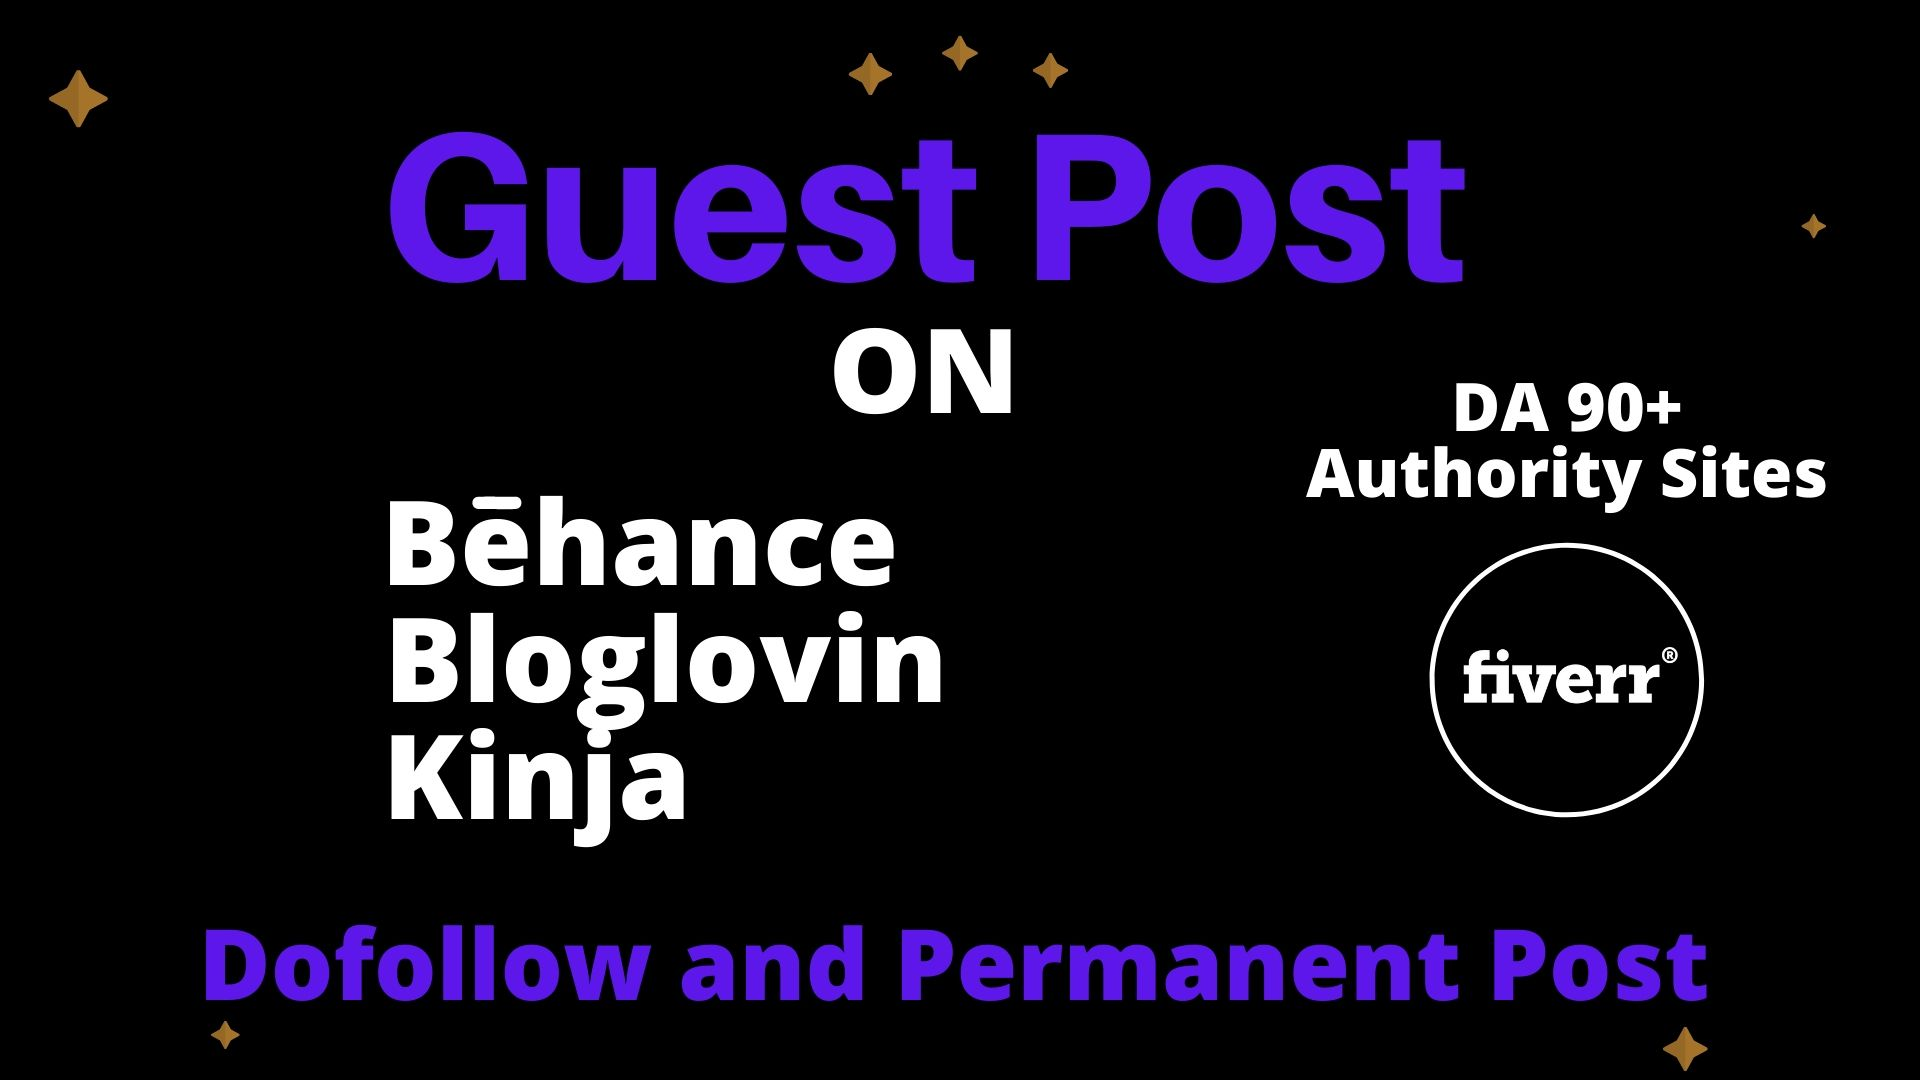 I will write and publish guest blog post on behance bloglovin and kinja with high quality backlinks